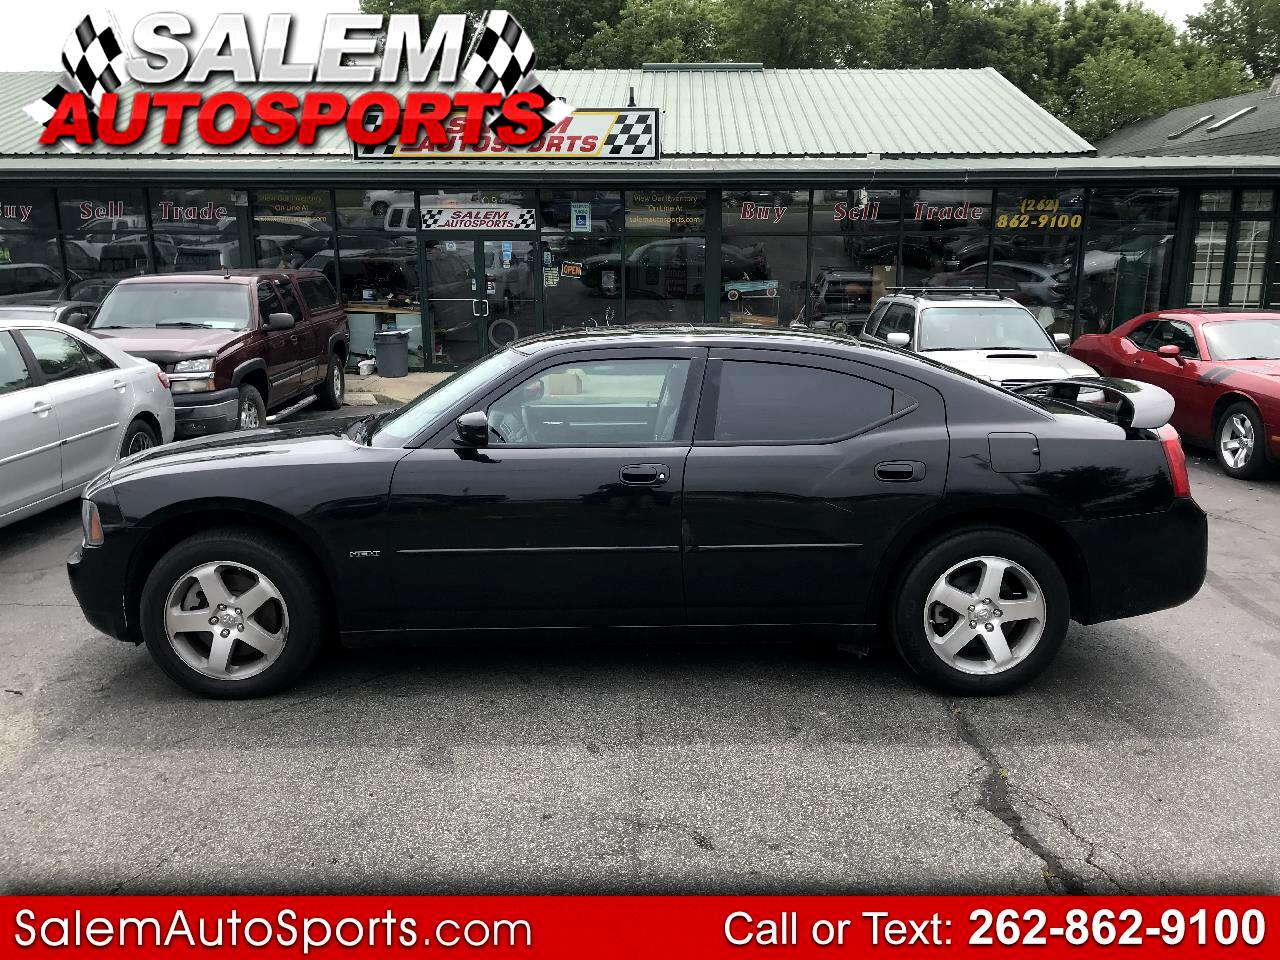 2009 Dodge Charger 4dr Sdn R/T AWD